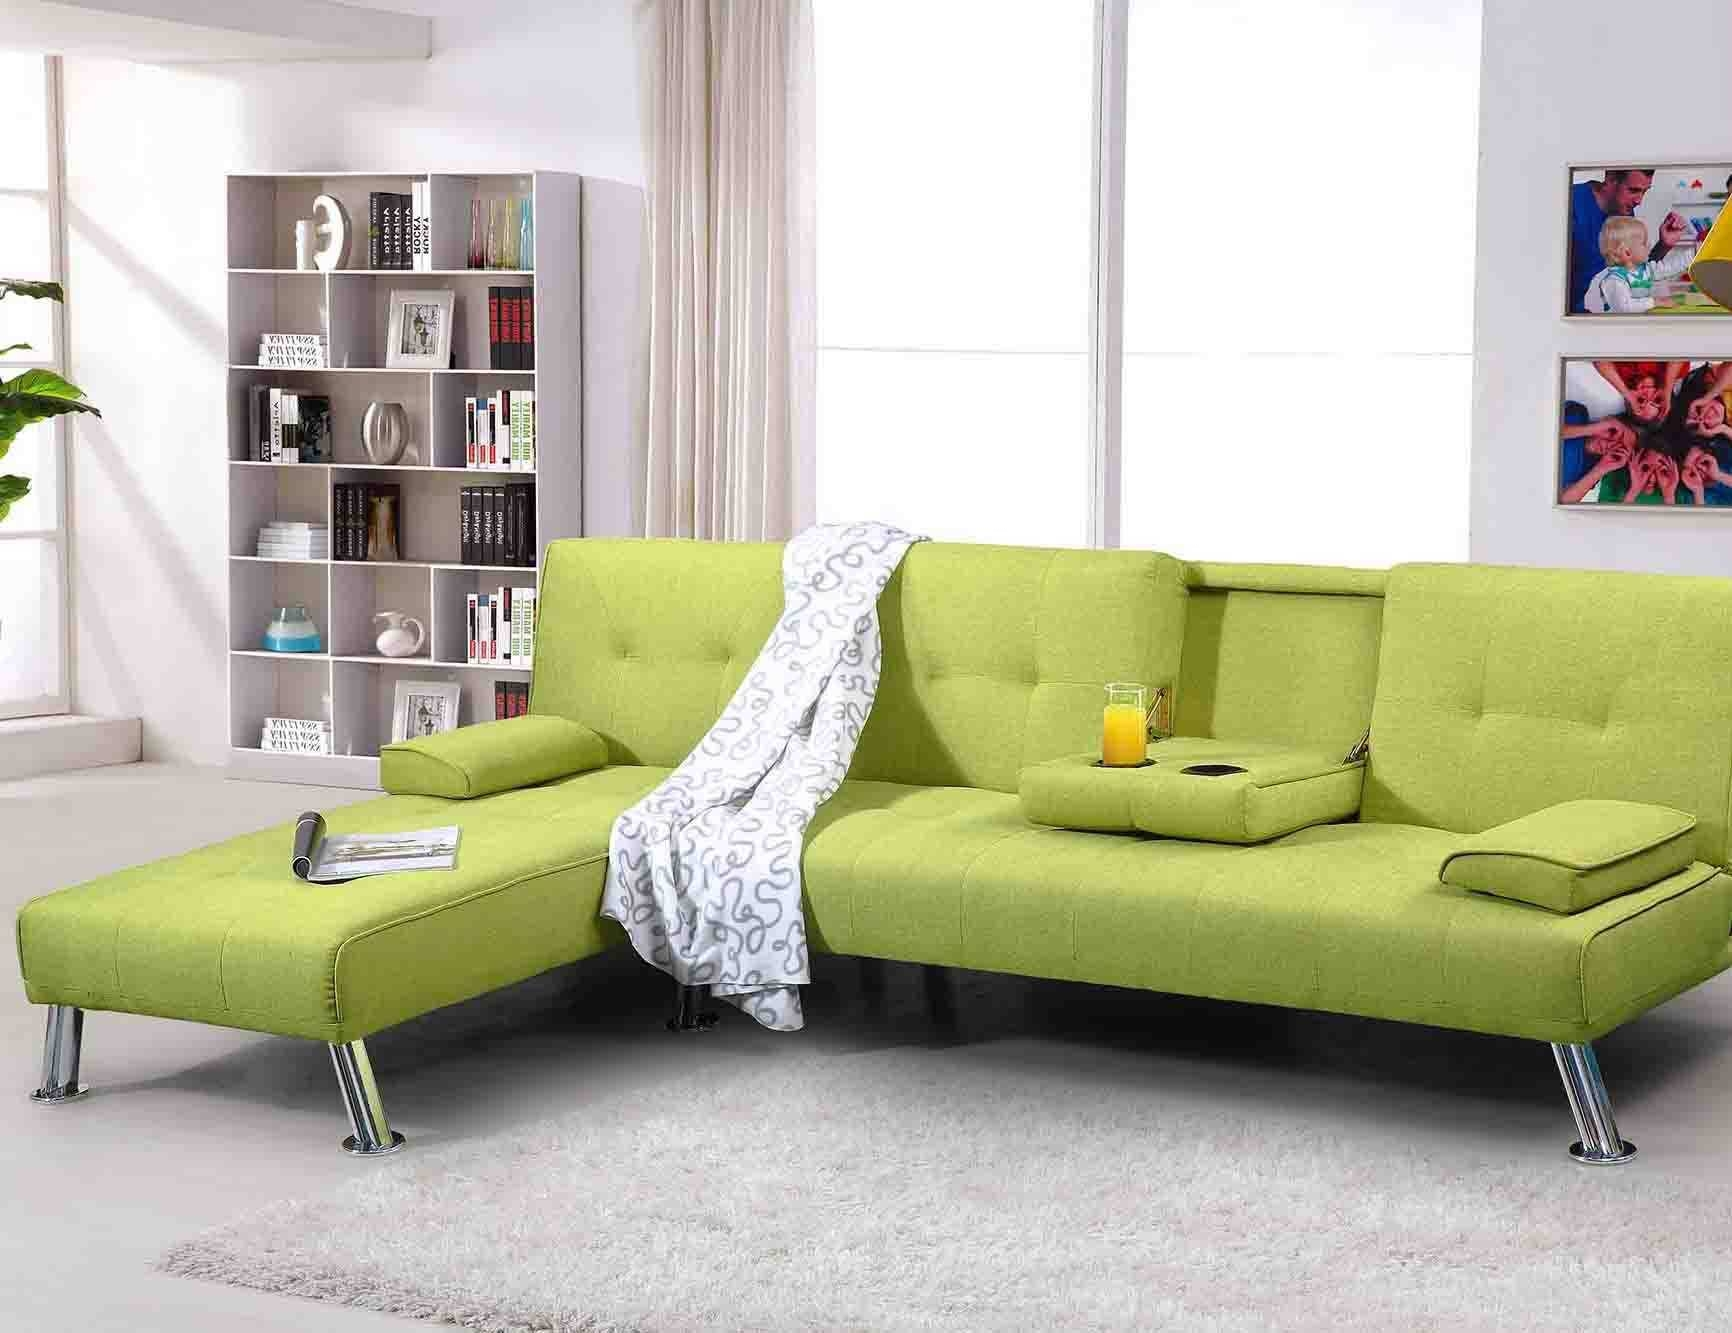 Cheap Sofas, Cheap Sofa Beds, Corner Sofa Beds, Free Uk Delivery within Cheap Corner Sofa Bed (Image 5 of 30)